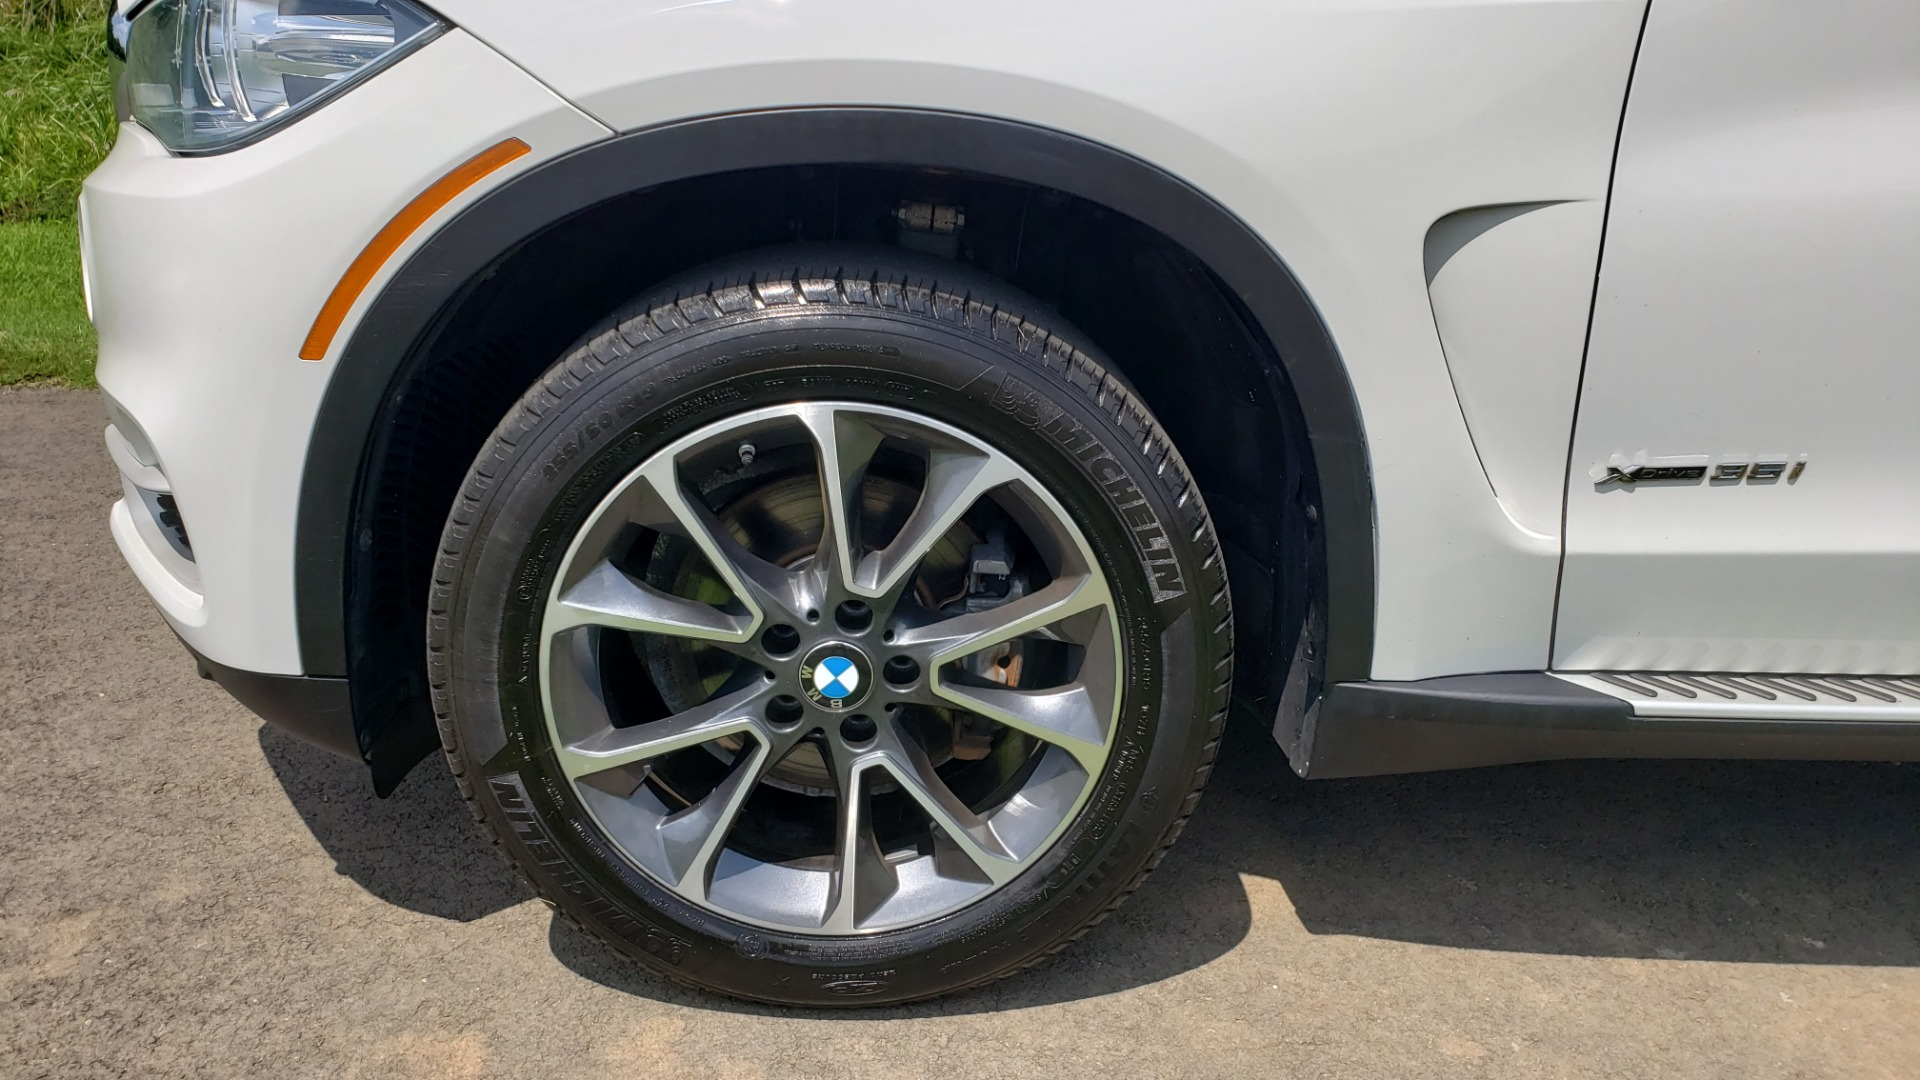 Used 2017 BMW X5 XDRIVE35I / NAV / SUNROOF / RUNNING BOARDS / REARVIEW for sale $33,995 at Formula Imports in Charlotte NC 28227 13